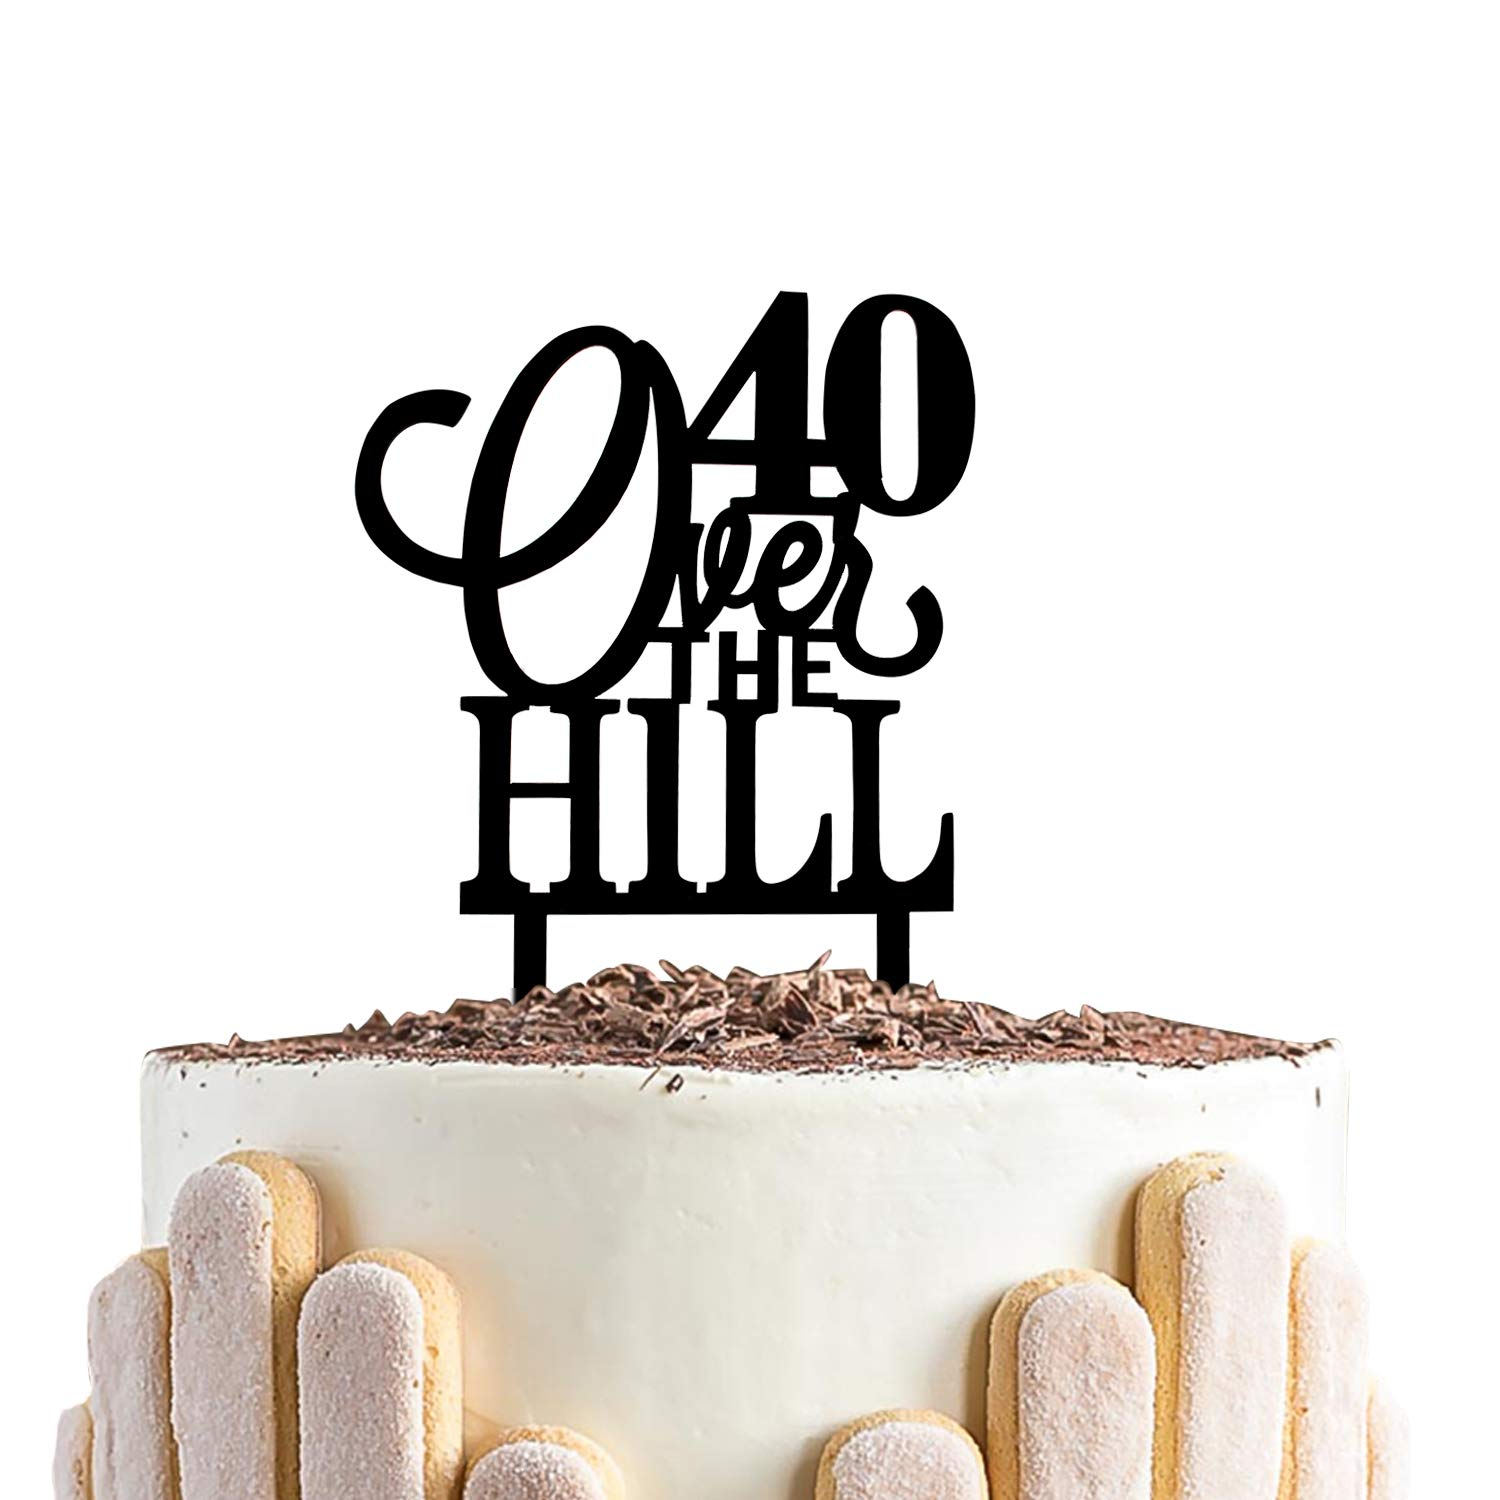 Tremendous Amazon Com 40 Over The Hill Cake Topper 40Th Birthday Black Funny Birthday Cards Online Aeocydamsfinfo